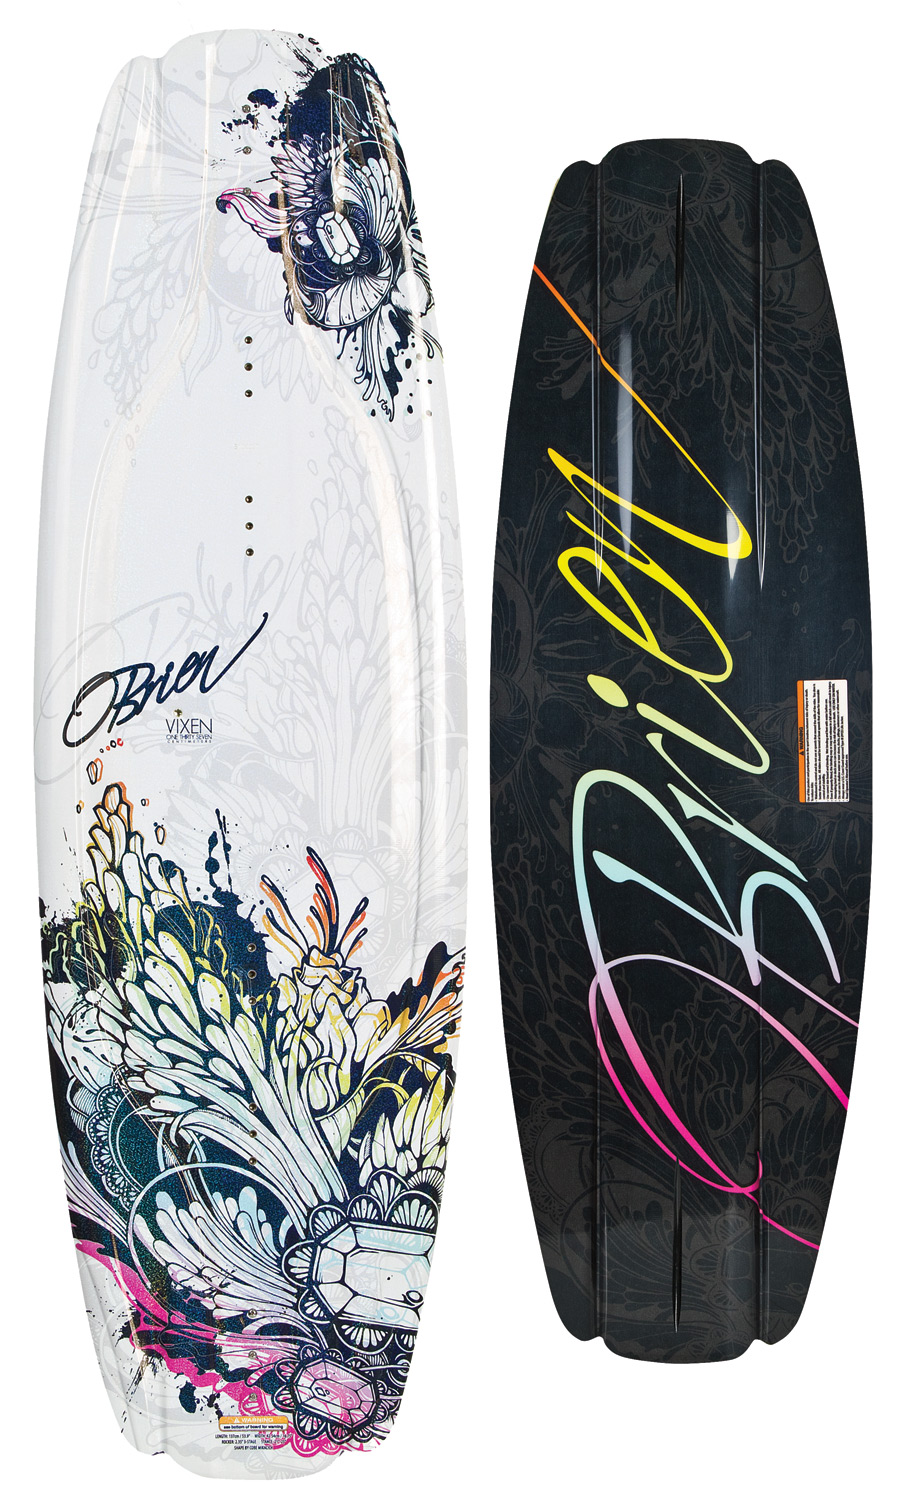 Wake The Vixen has all the features of our Clutch wakeboard, tuned for the ladies. Extended refined molded-in fins give the smoothest control, pop comes easy with the 3-stage rocker. Wakeboard Binding CompatabilityCan accomodate bindings with a 6 inch binding plate found here. Can only accommodate a single mounting position option for Liquid Force bindings with a 8 inch binding plate and offers two positions for all other vendors found here. - $148.95